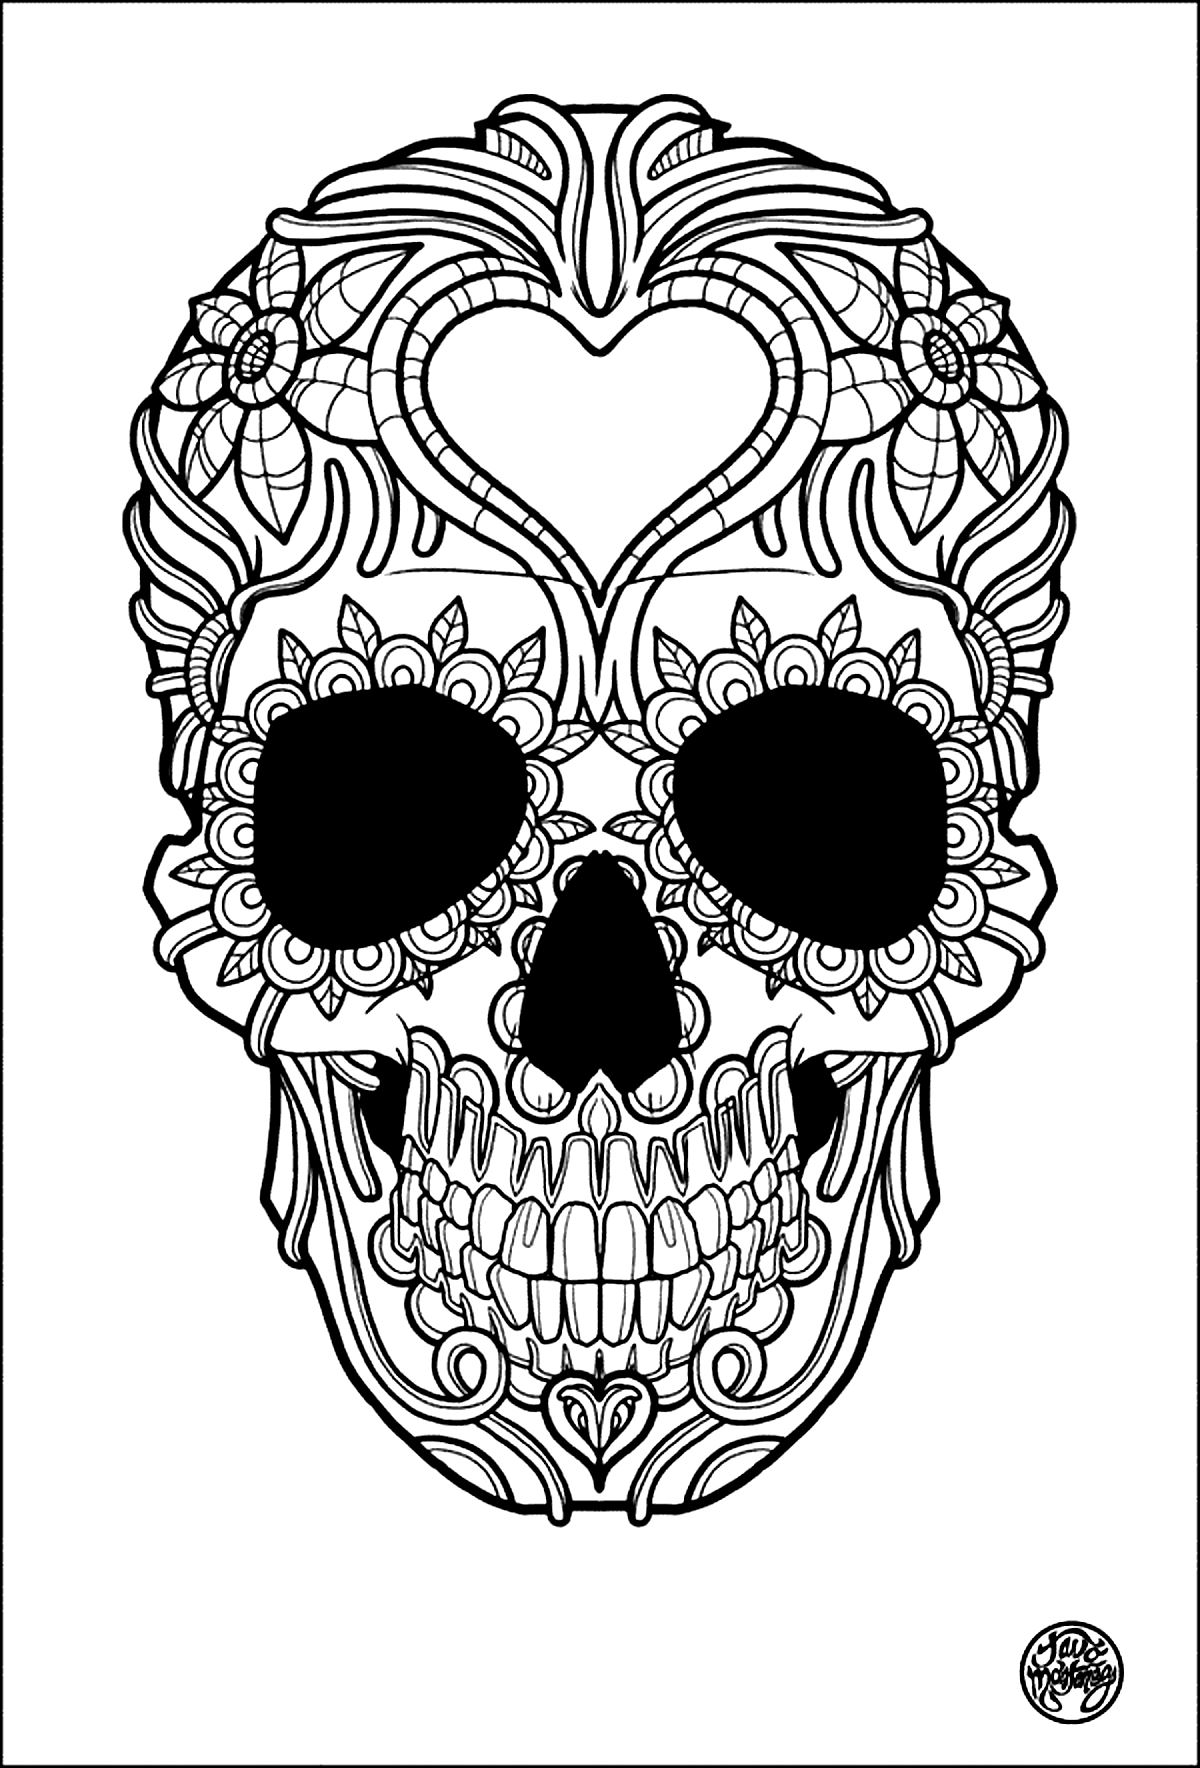 19 of the best adult colouring pages free printables for everyone - Coloring Book Pages For Adults 2